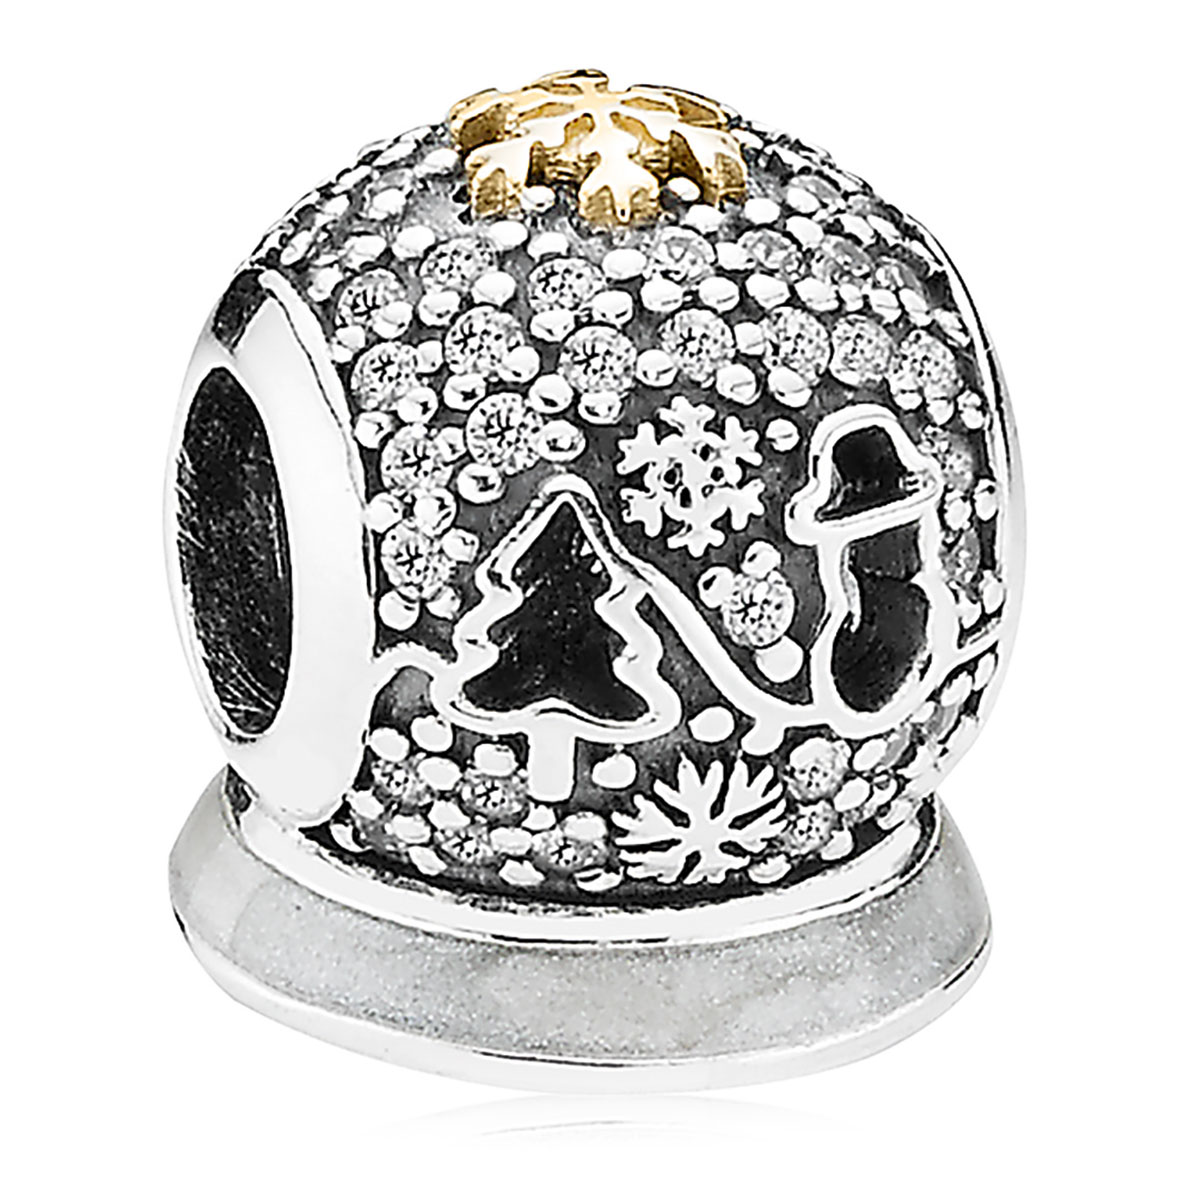 PANDORA Limited Edition 2015 Wonderland Holiday Charm with Gift Box